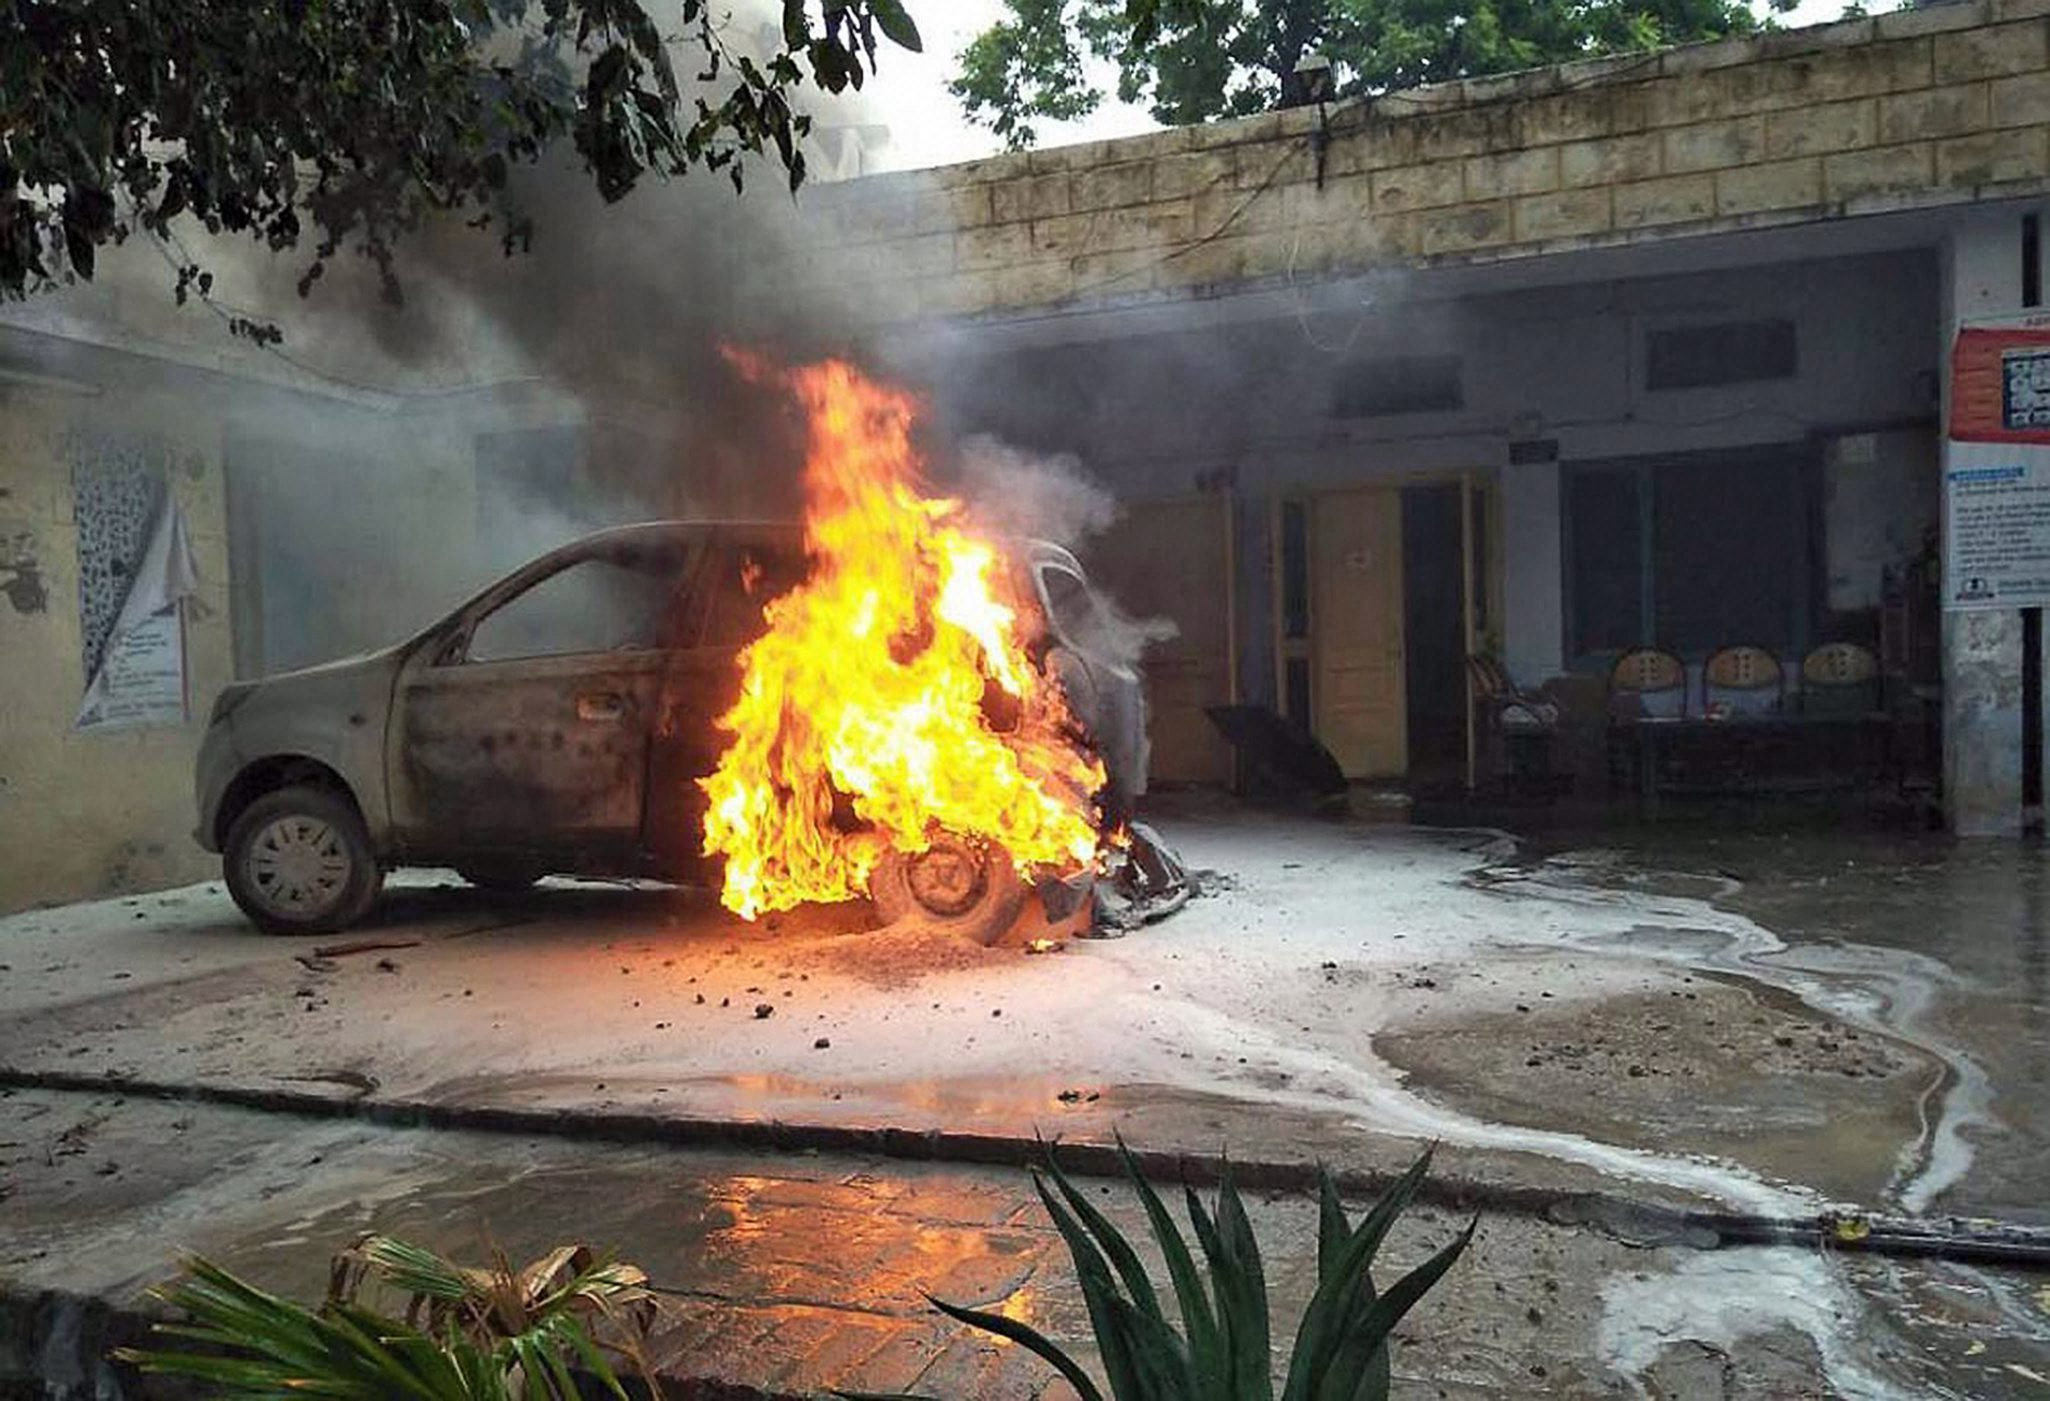 A car is set ablaze at an Income Tax office in Mansa, Punjab. (Credit: PTI)